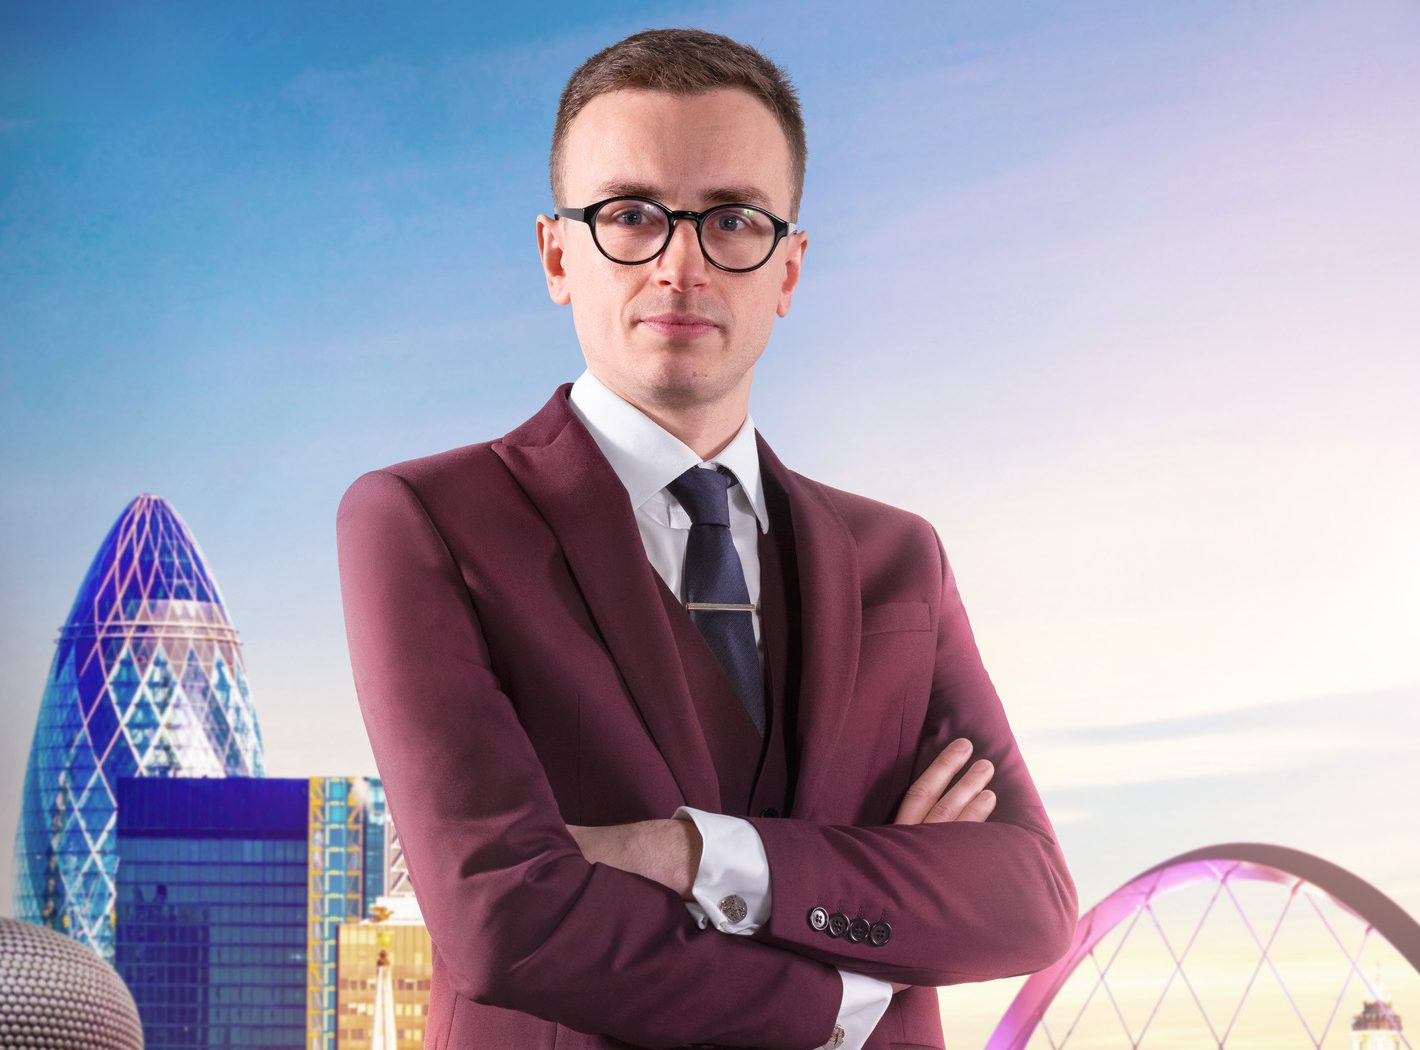 The Apprentice candidate David Alden is standing by that big mistake: 'I'm going to say something controversial'